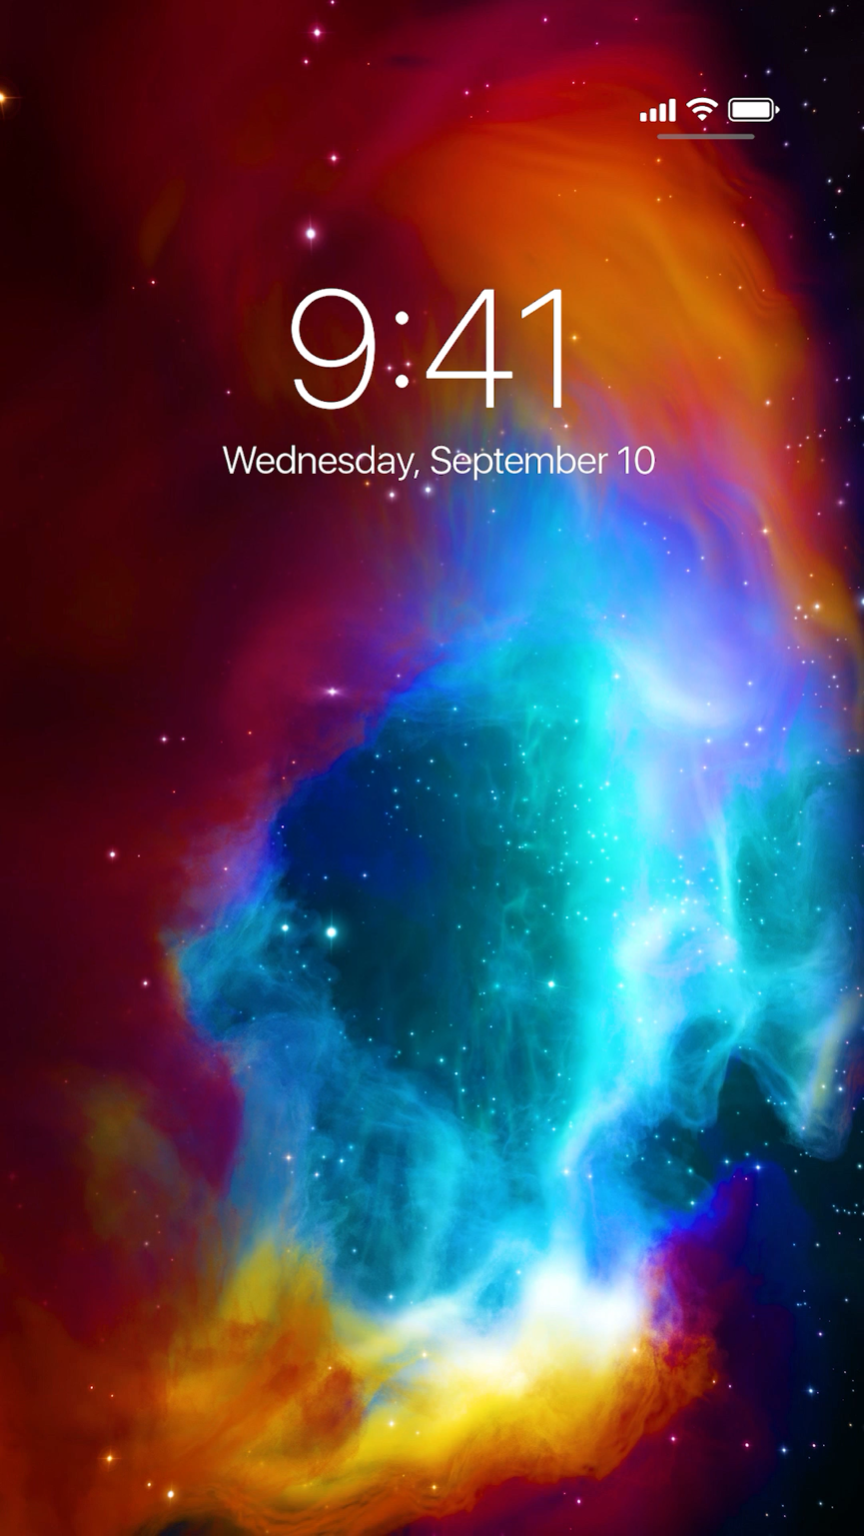 Space 💫 Live Wallpapers Make your screen wonderful. With